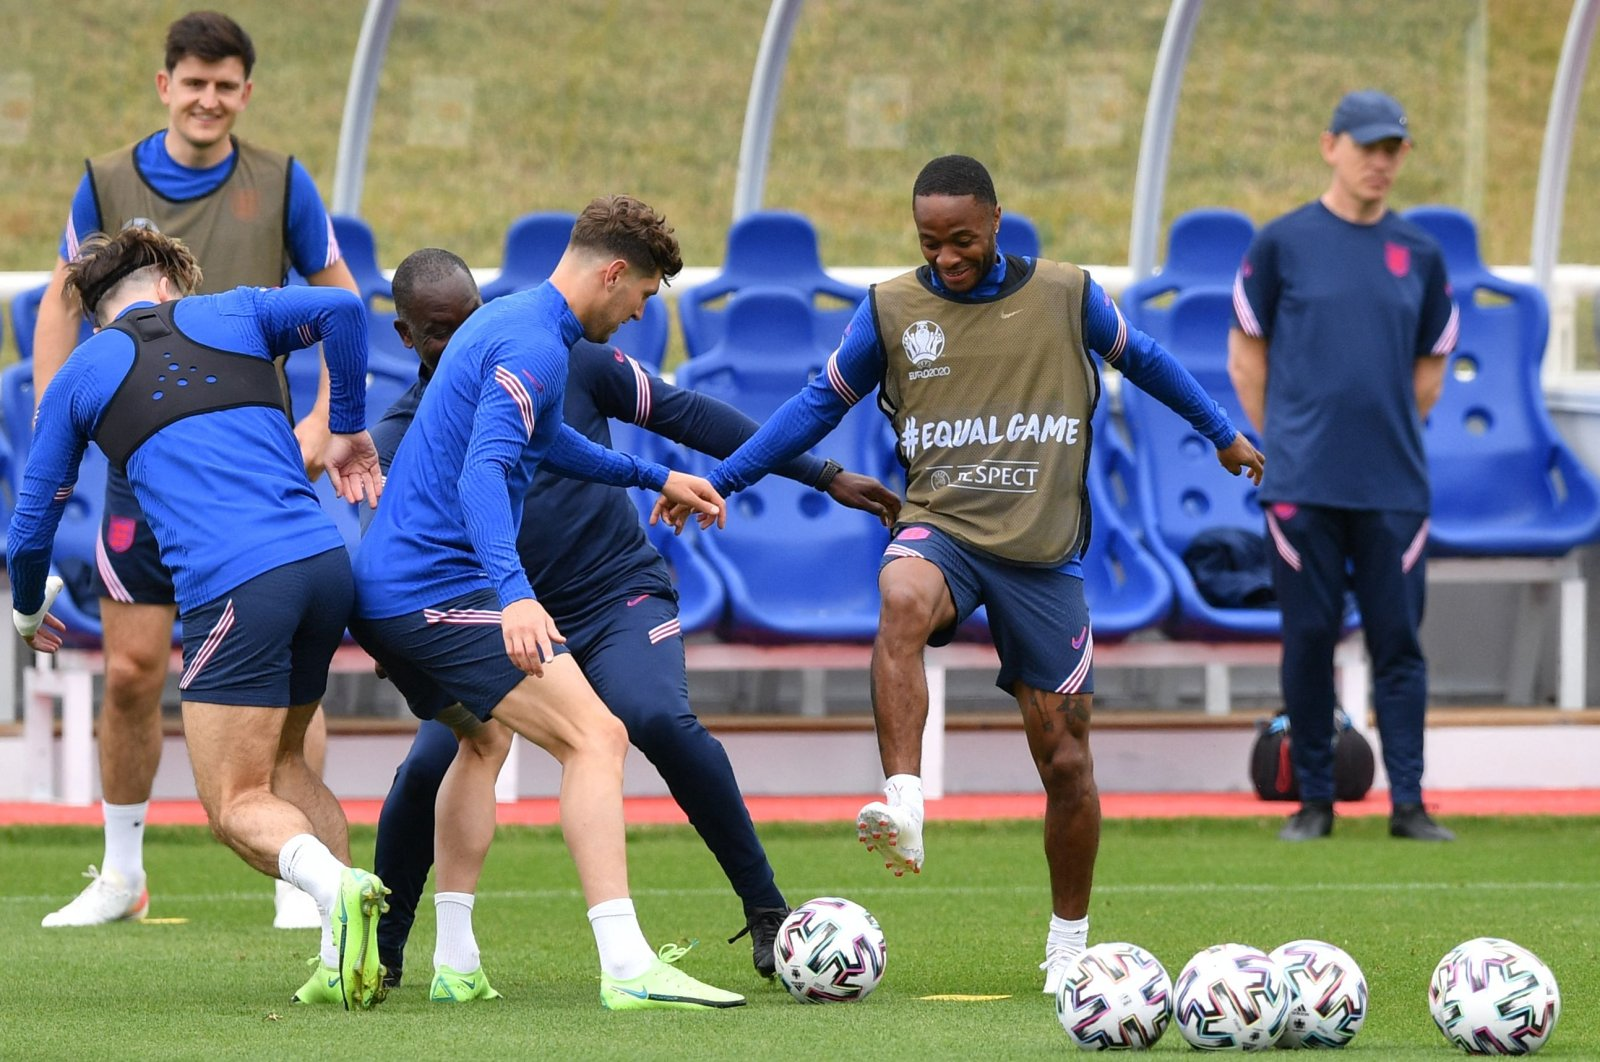 England forward Raheem Sterling (R) and England's defender John Stones (C) fight for a ball with teammates during a training session at the Tottenham Hotspur training ground, London, England, June 17, 2021. (AFP Photo)